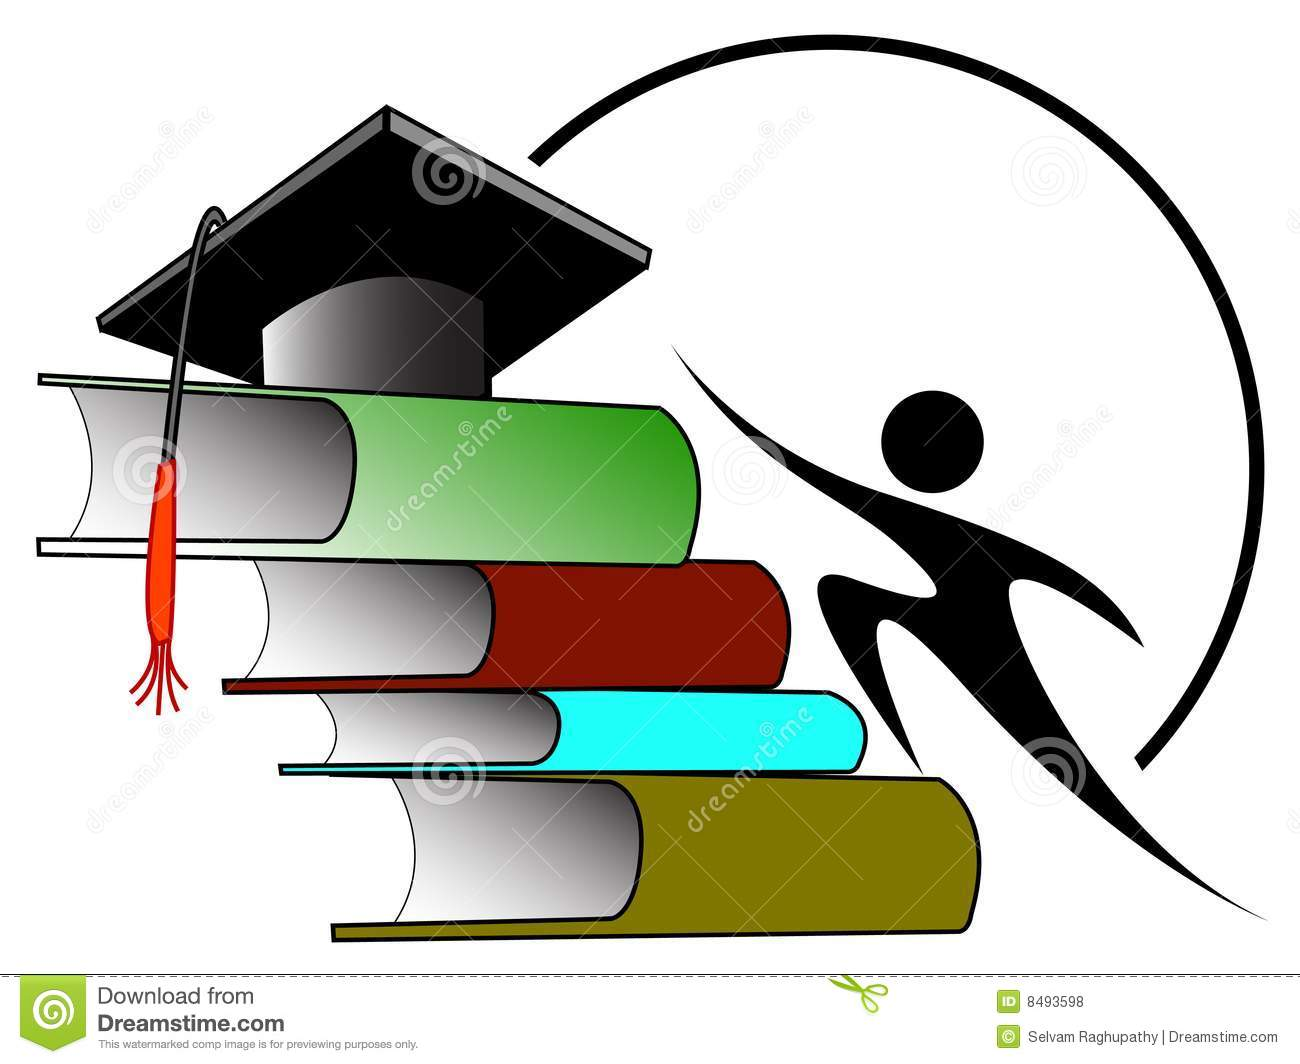 College student with books against purple abstract background   Stock Image Society